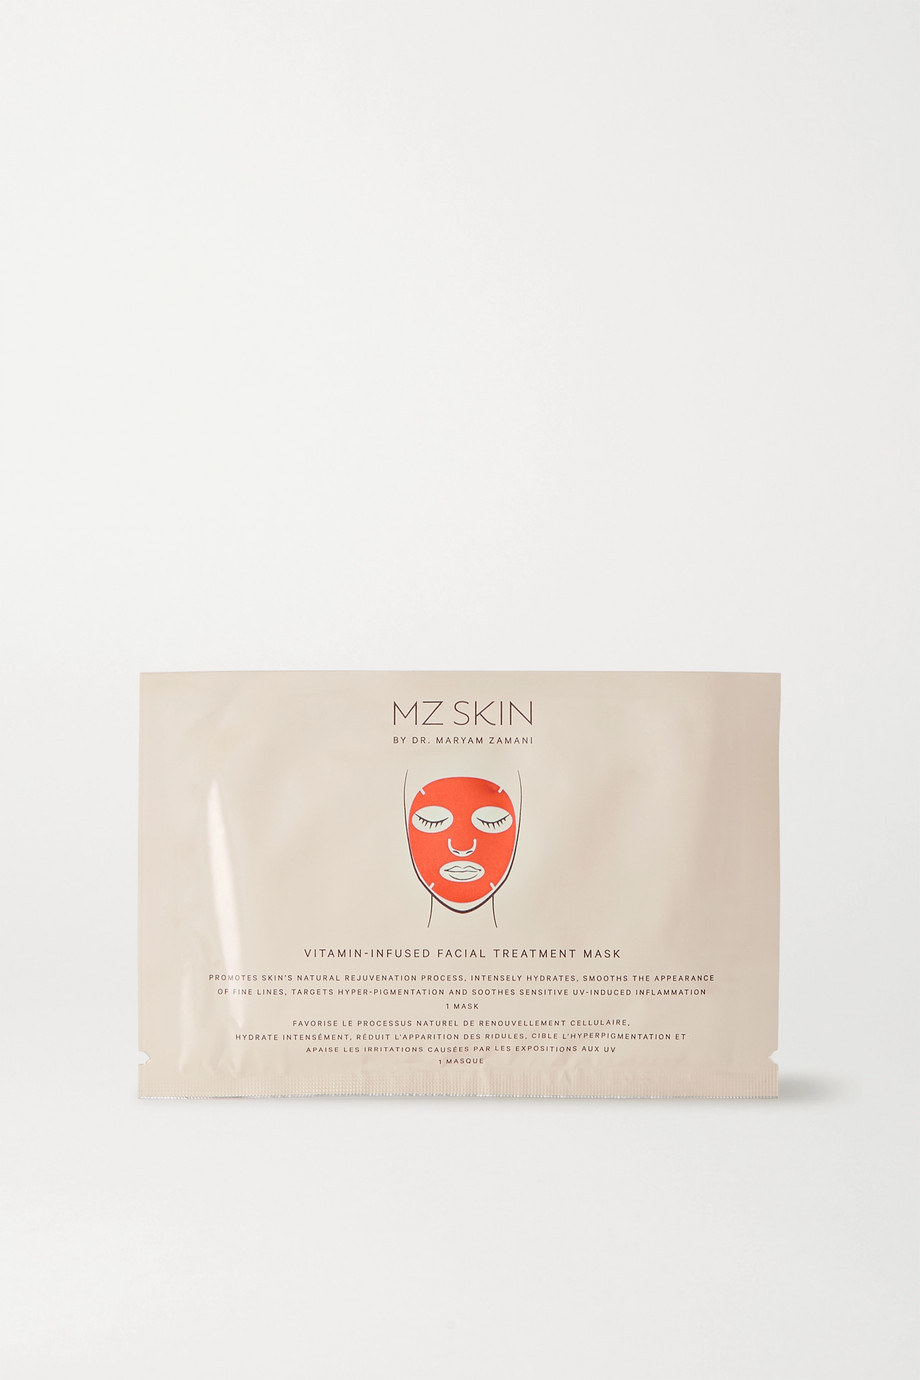 MZ SKIN Vitamin-Infused Facial Treatment Mask x 5